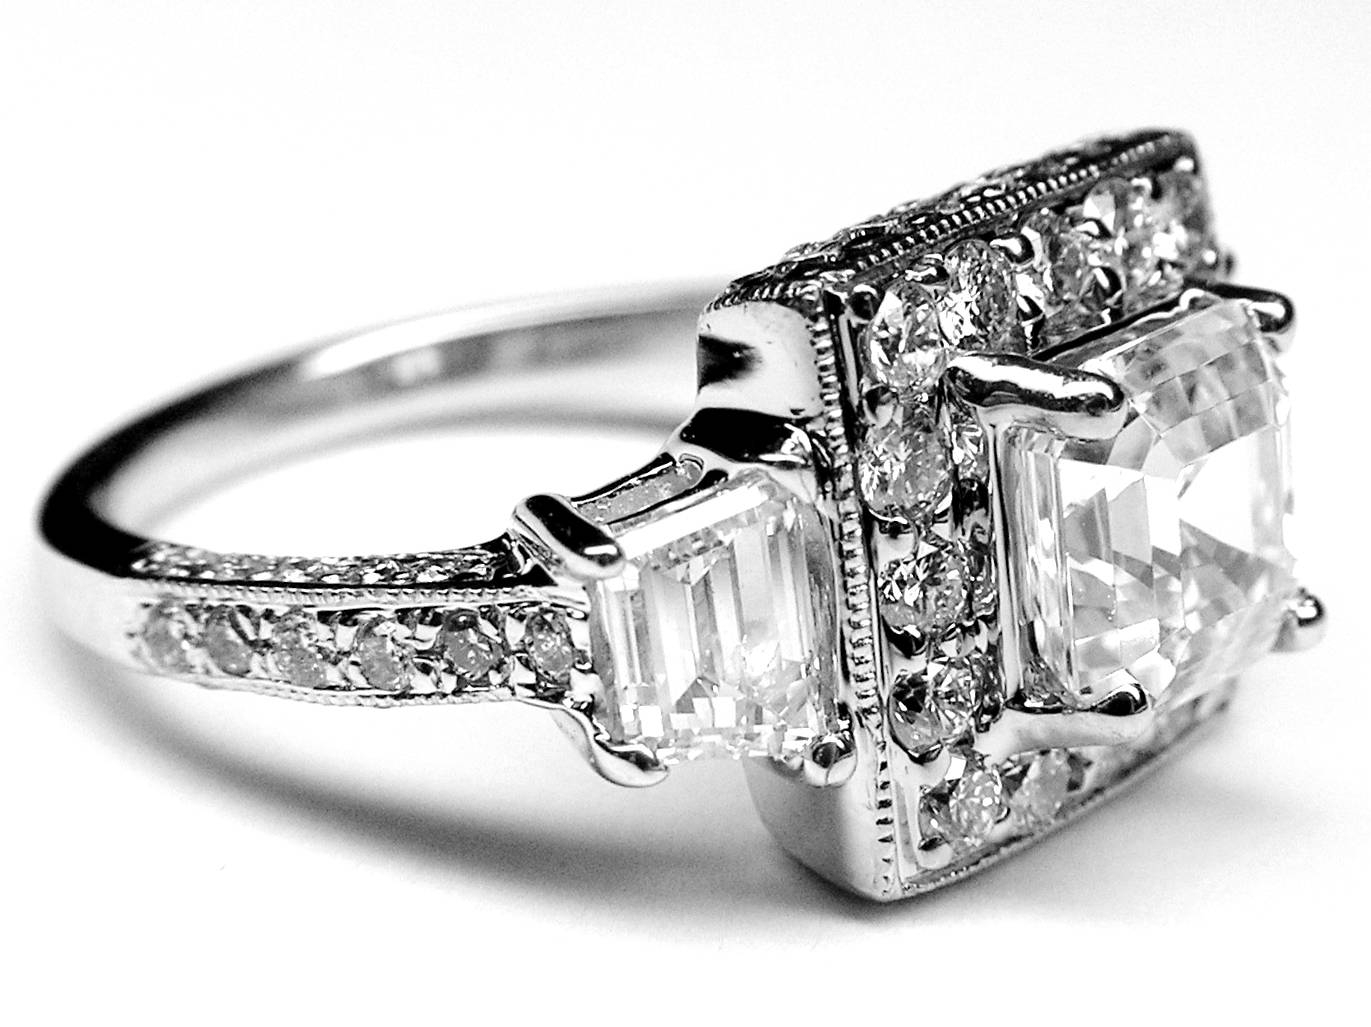 Engagement Ring  Asscher Cut Diamond Vintage Halo Engagement Ring Throughout Vintage Halo Engagement Ring Settings (Gallery 2 of 15)